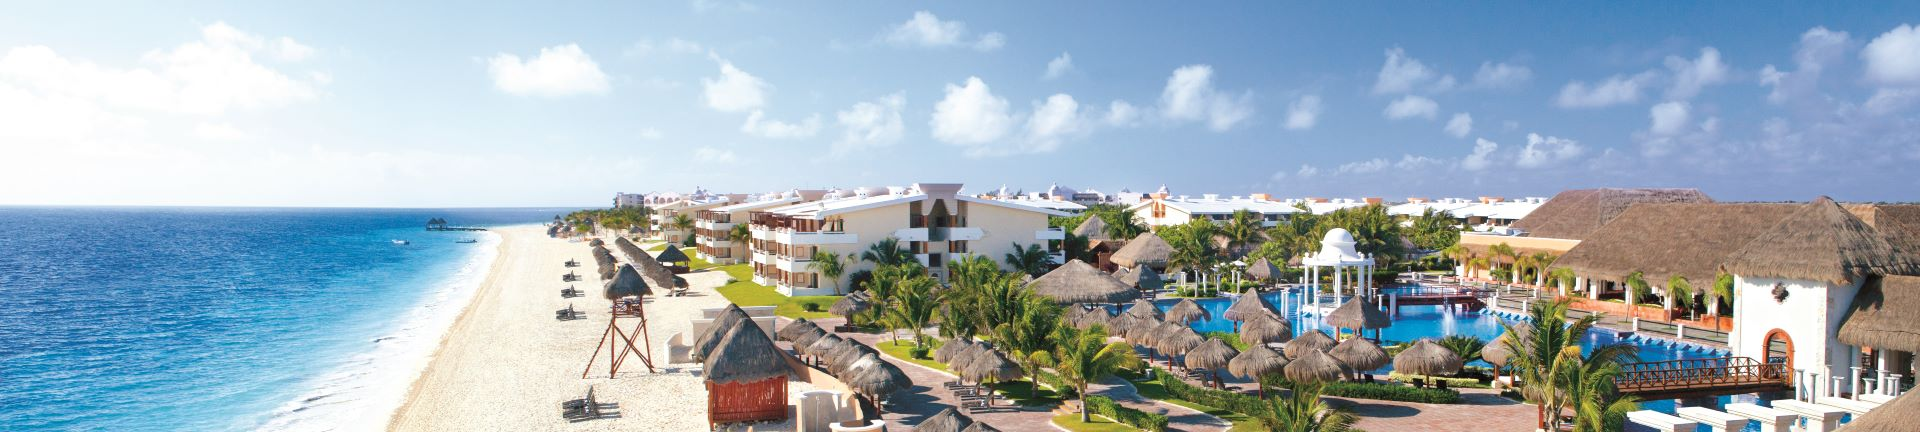 Now Sapphire Riviera Cancun  Holiday